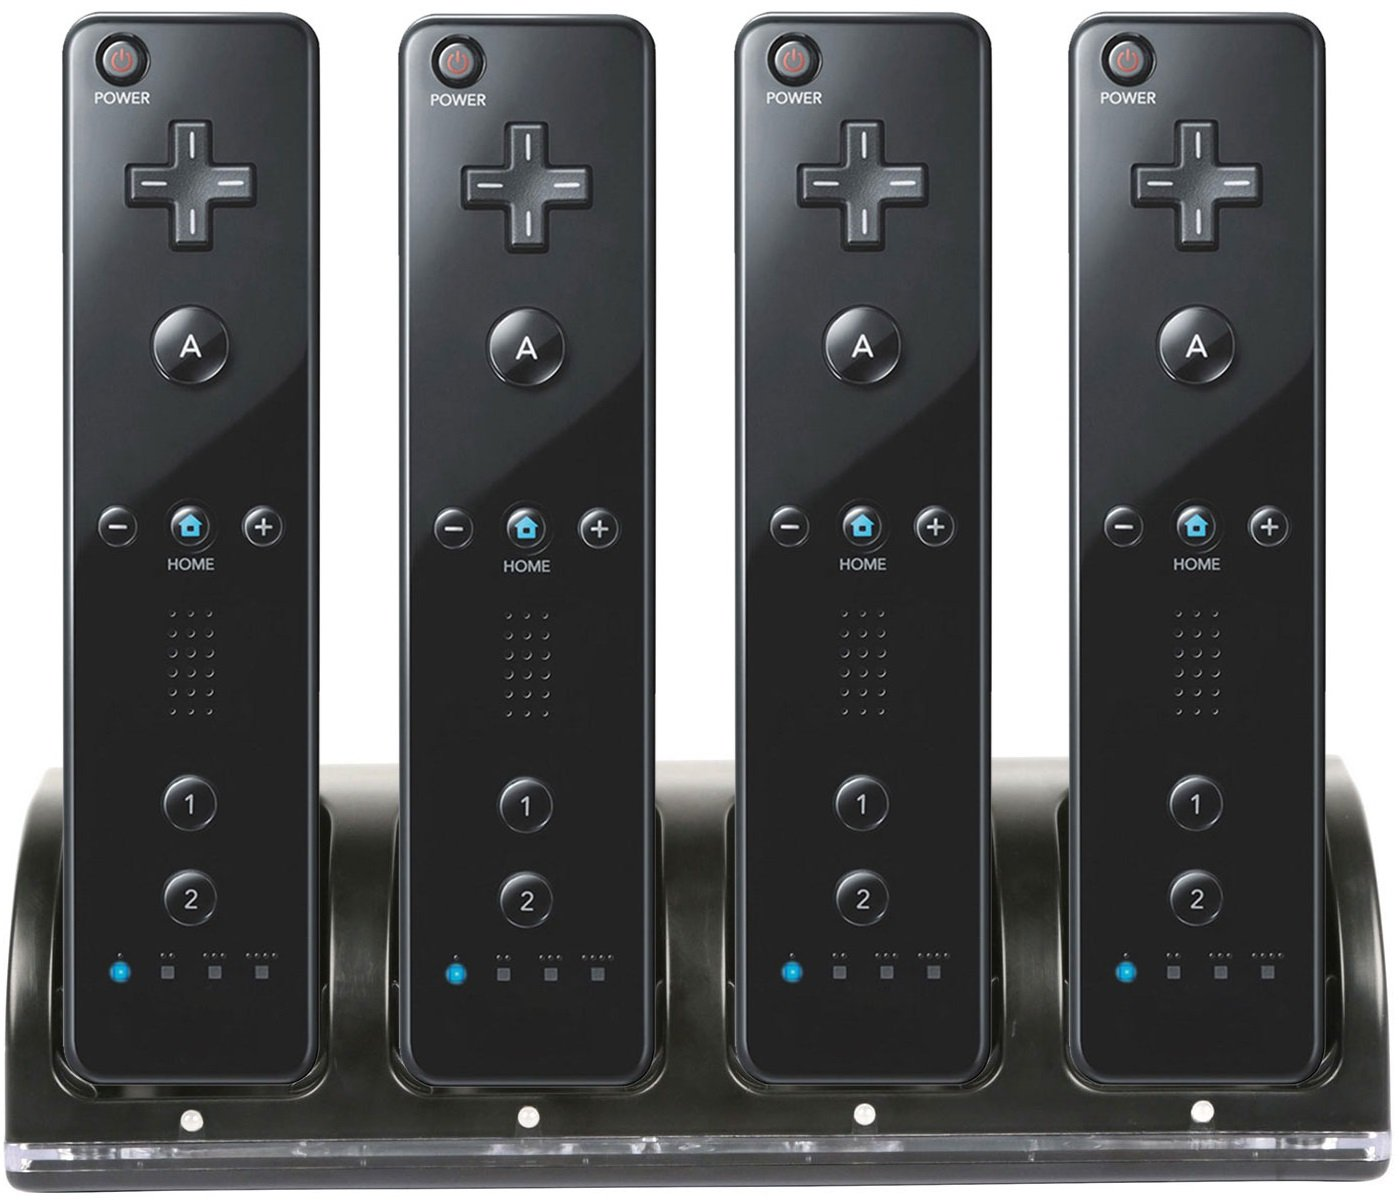 GPCT [Nintendo Wii] Remote 4 Charger Charging Dock W/ 4 Rechargeable Batteries & Docking Station. [LED Charge Indicator] for Wii / Wii U Remote Controller [BLACK]